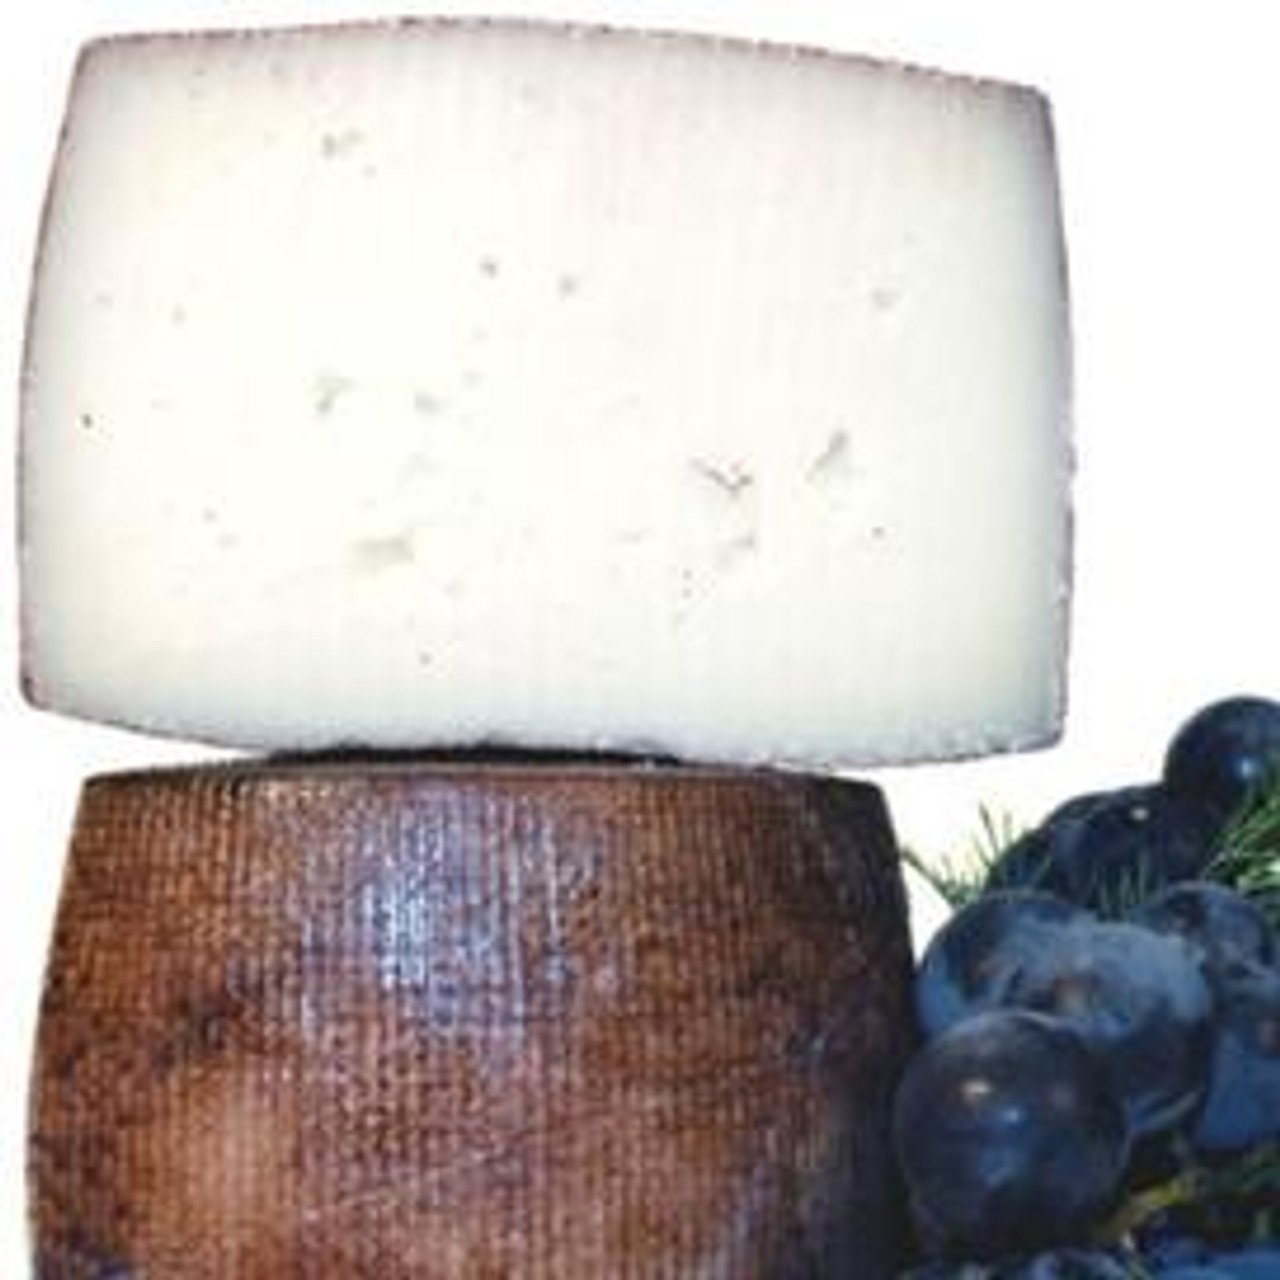 Drunken Goat Cheese